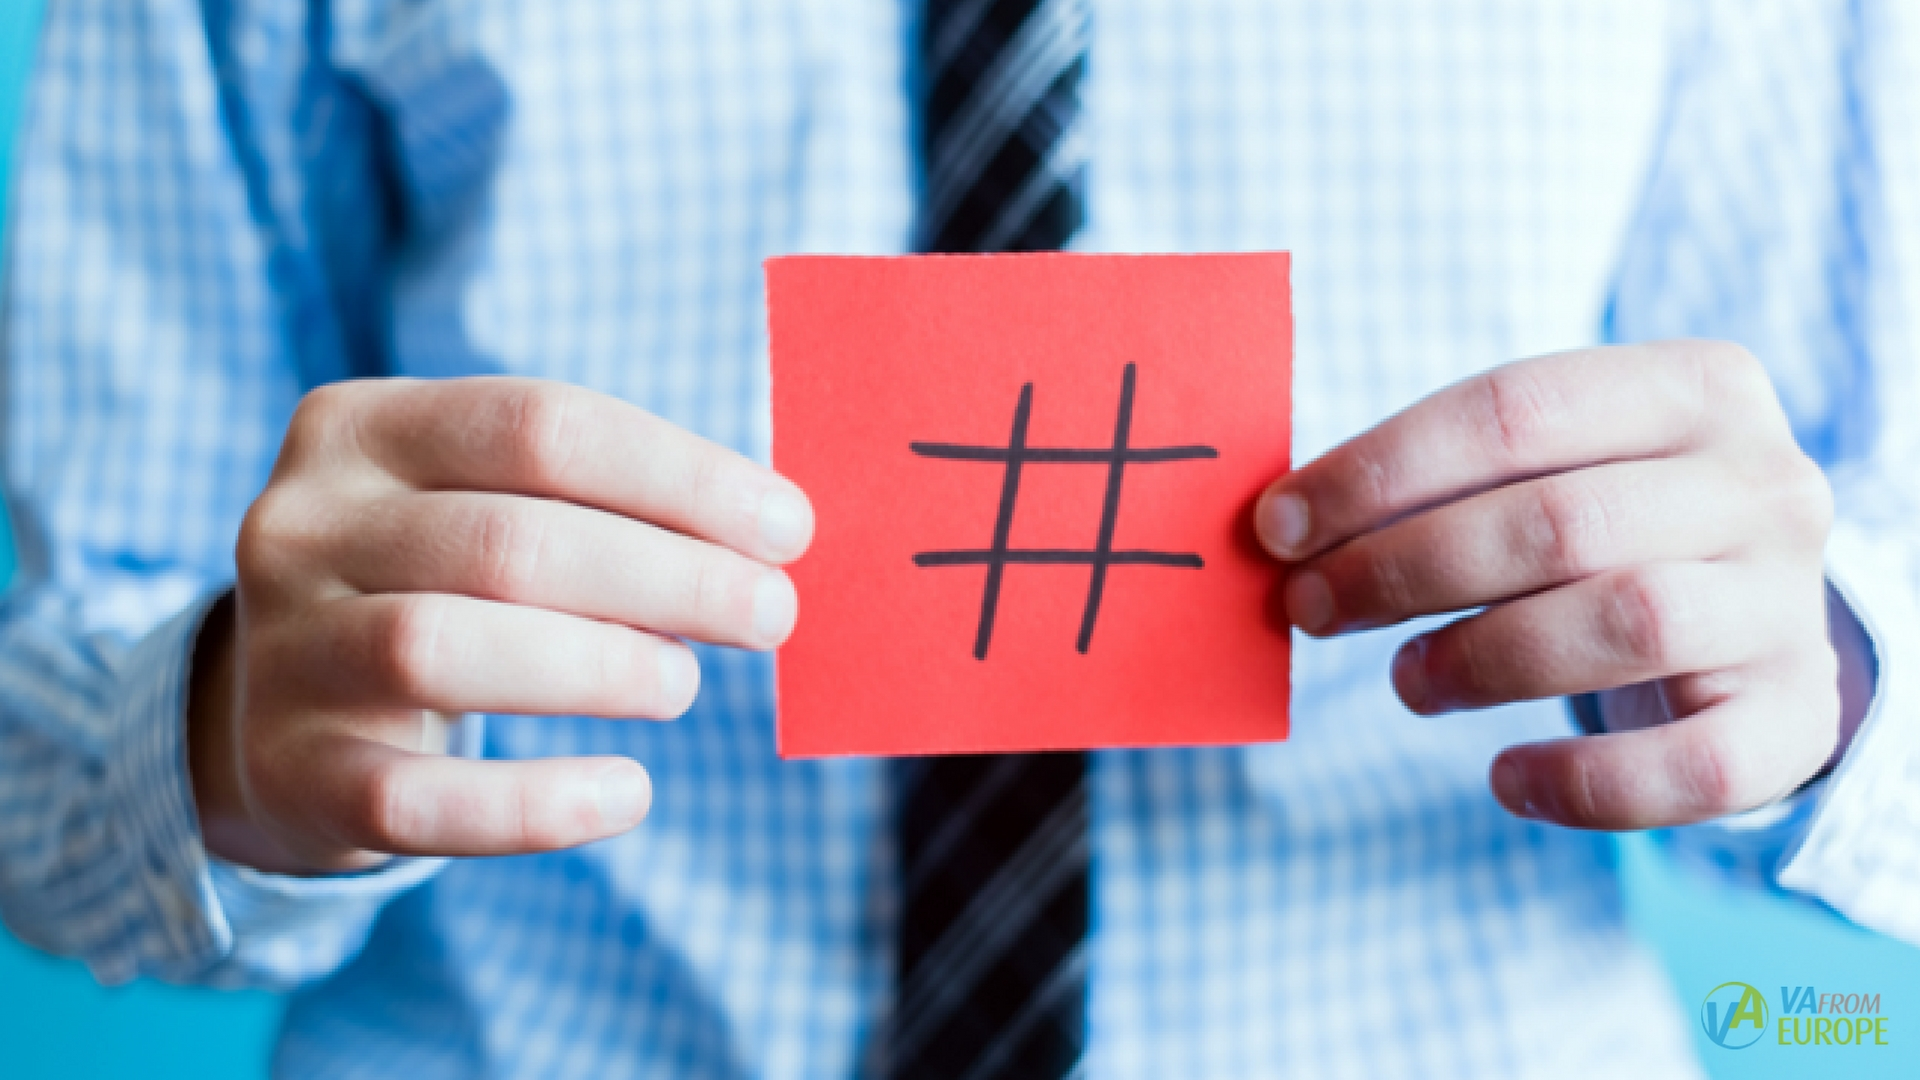 Hashtag - impact on the promotion in social networks | European Virtual Assistant Agency